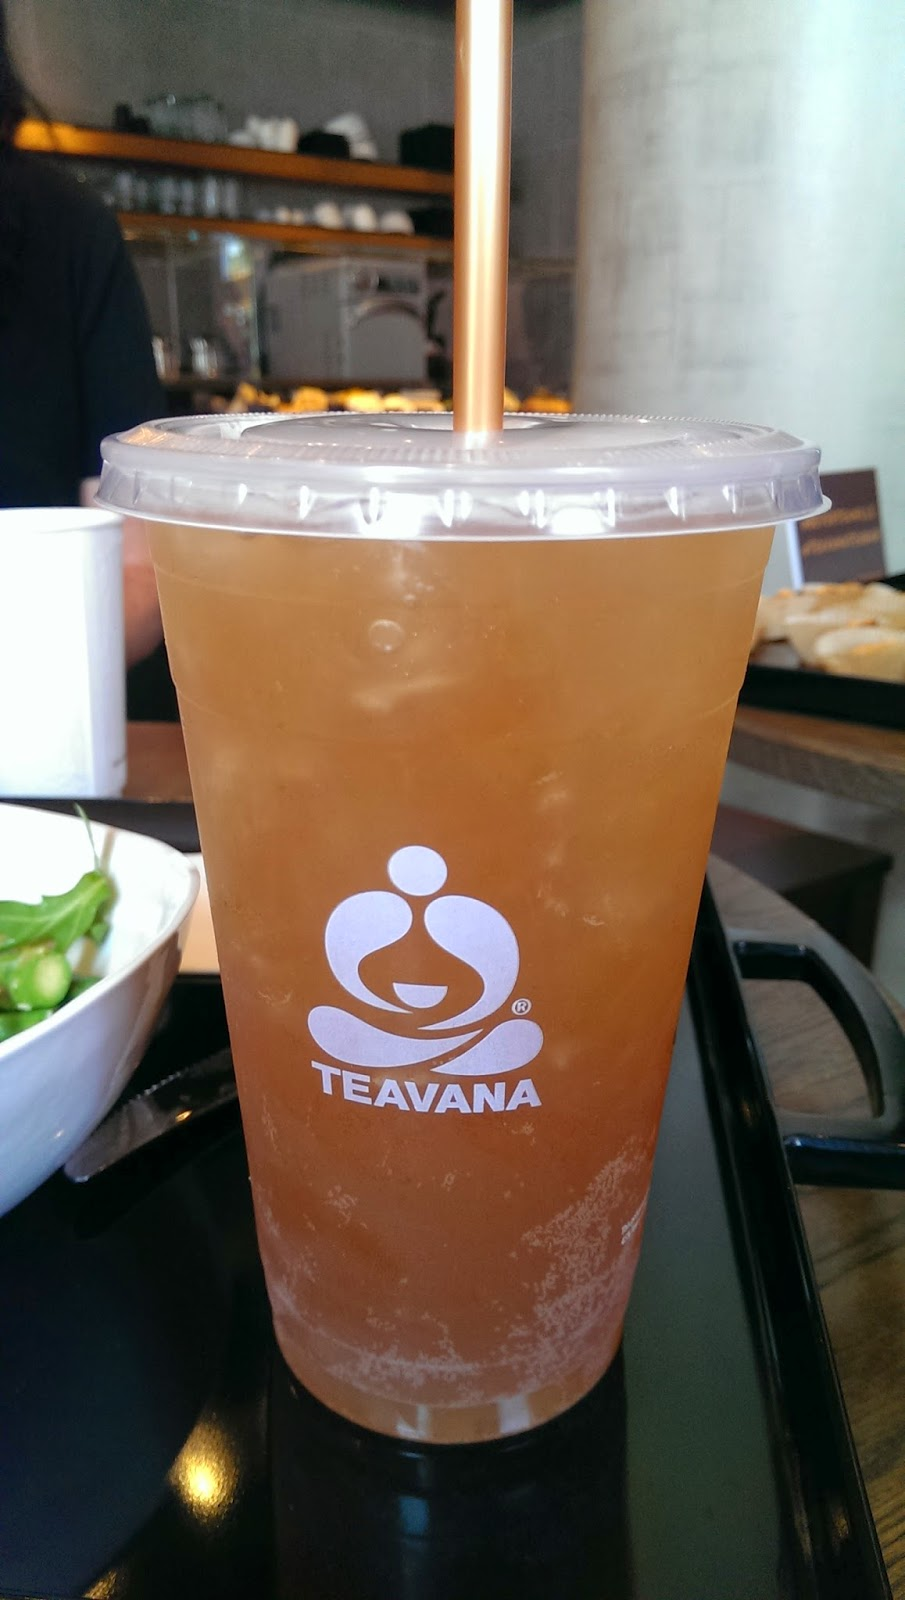 Teavana+Tea+Bar Teavana Tea Bar Review- Loose Leaf  Tea #Beverteahills #Teavanateabar